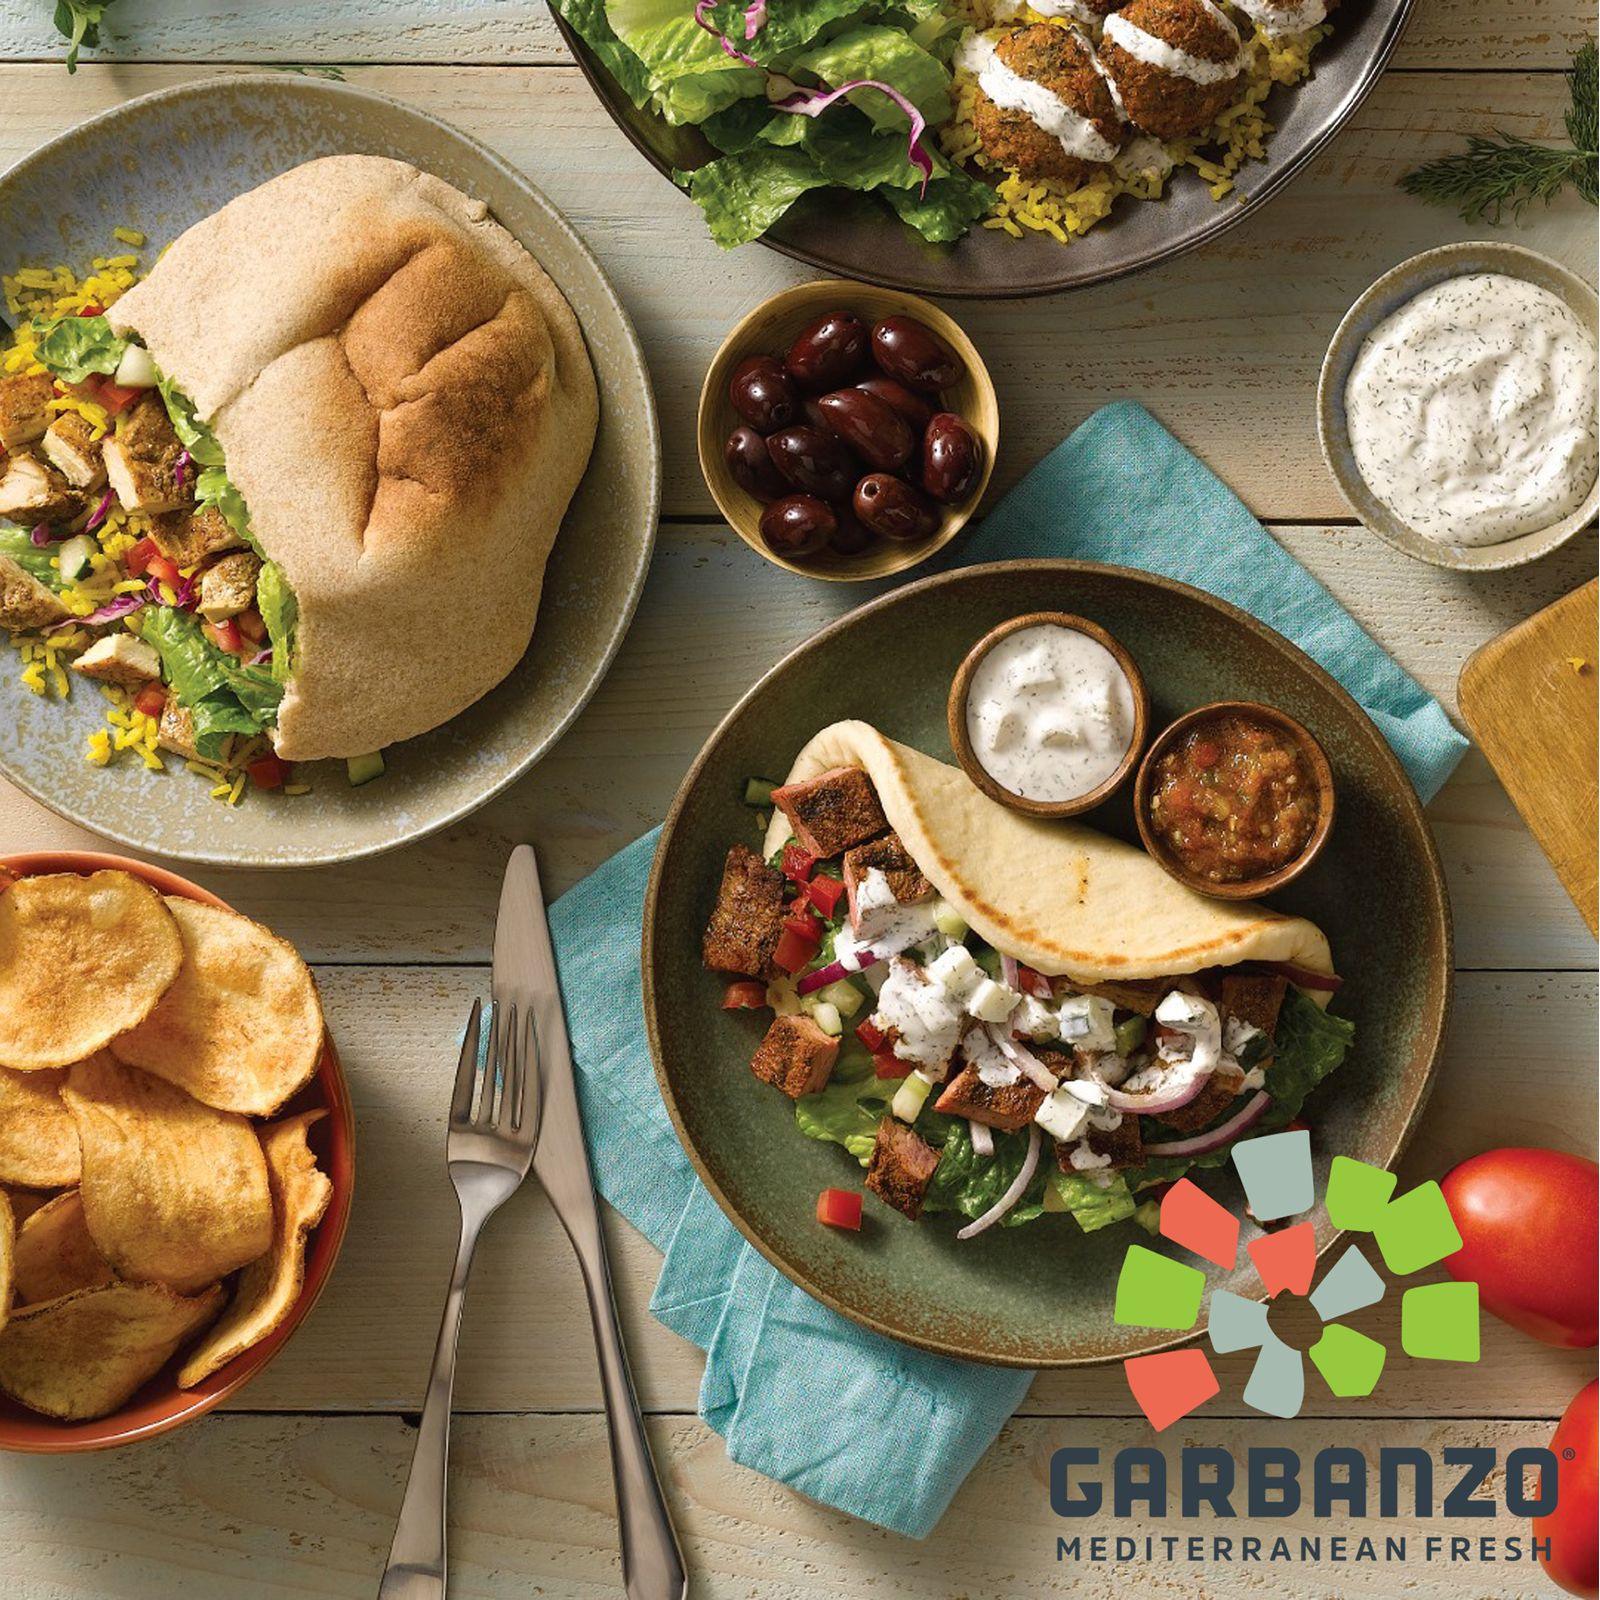 Saladworks' Parent Company Acquires Garbanzo Mediterranean Fresh and Frutta Bowls, Forms WOWorks